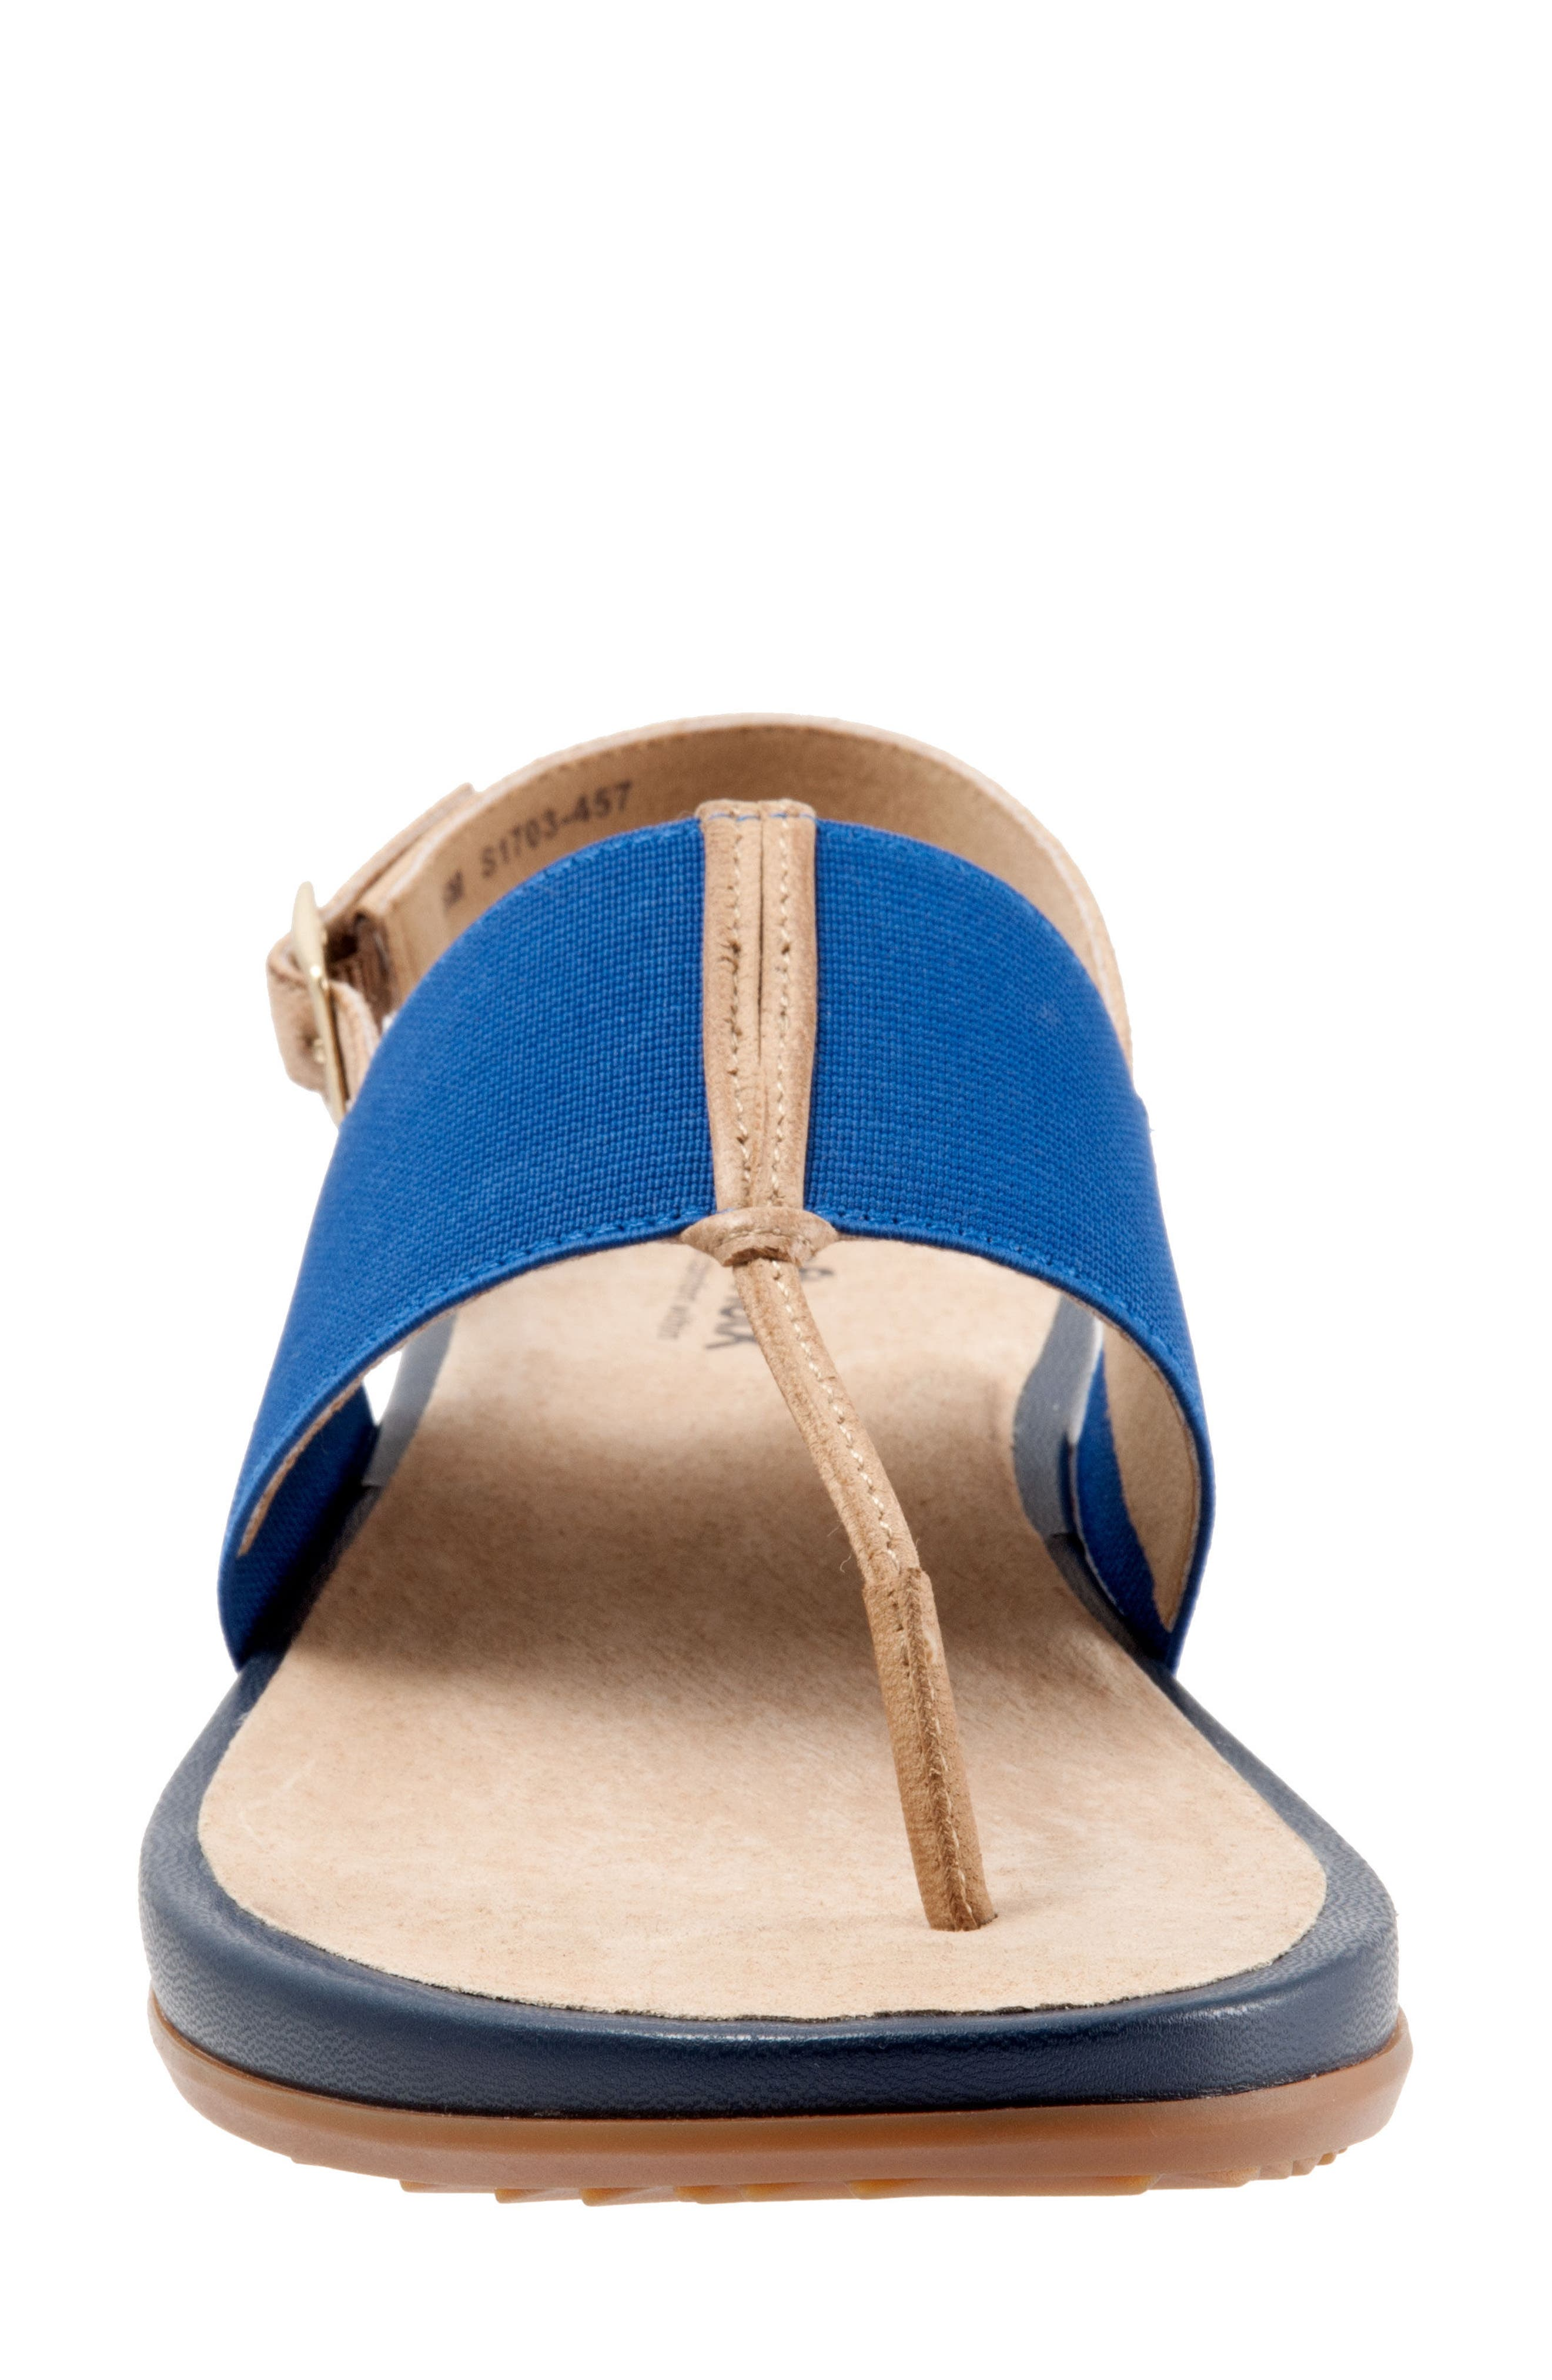 Daytona Sandal,                             Alternate thumbnail 4, color,                             Navy/ Tan Leather